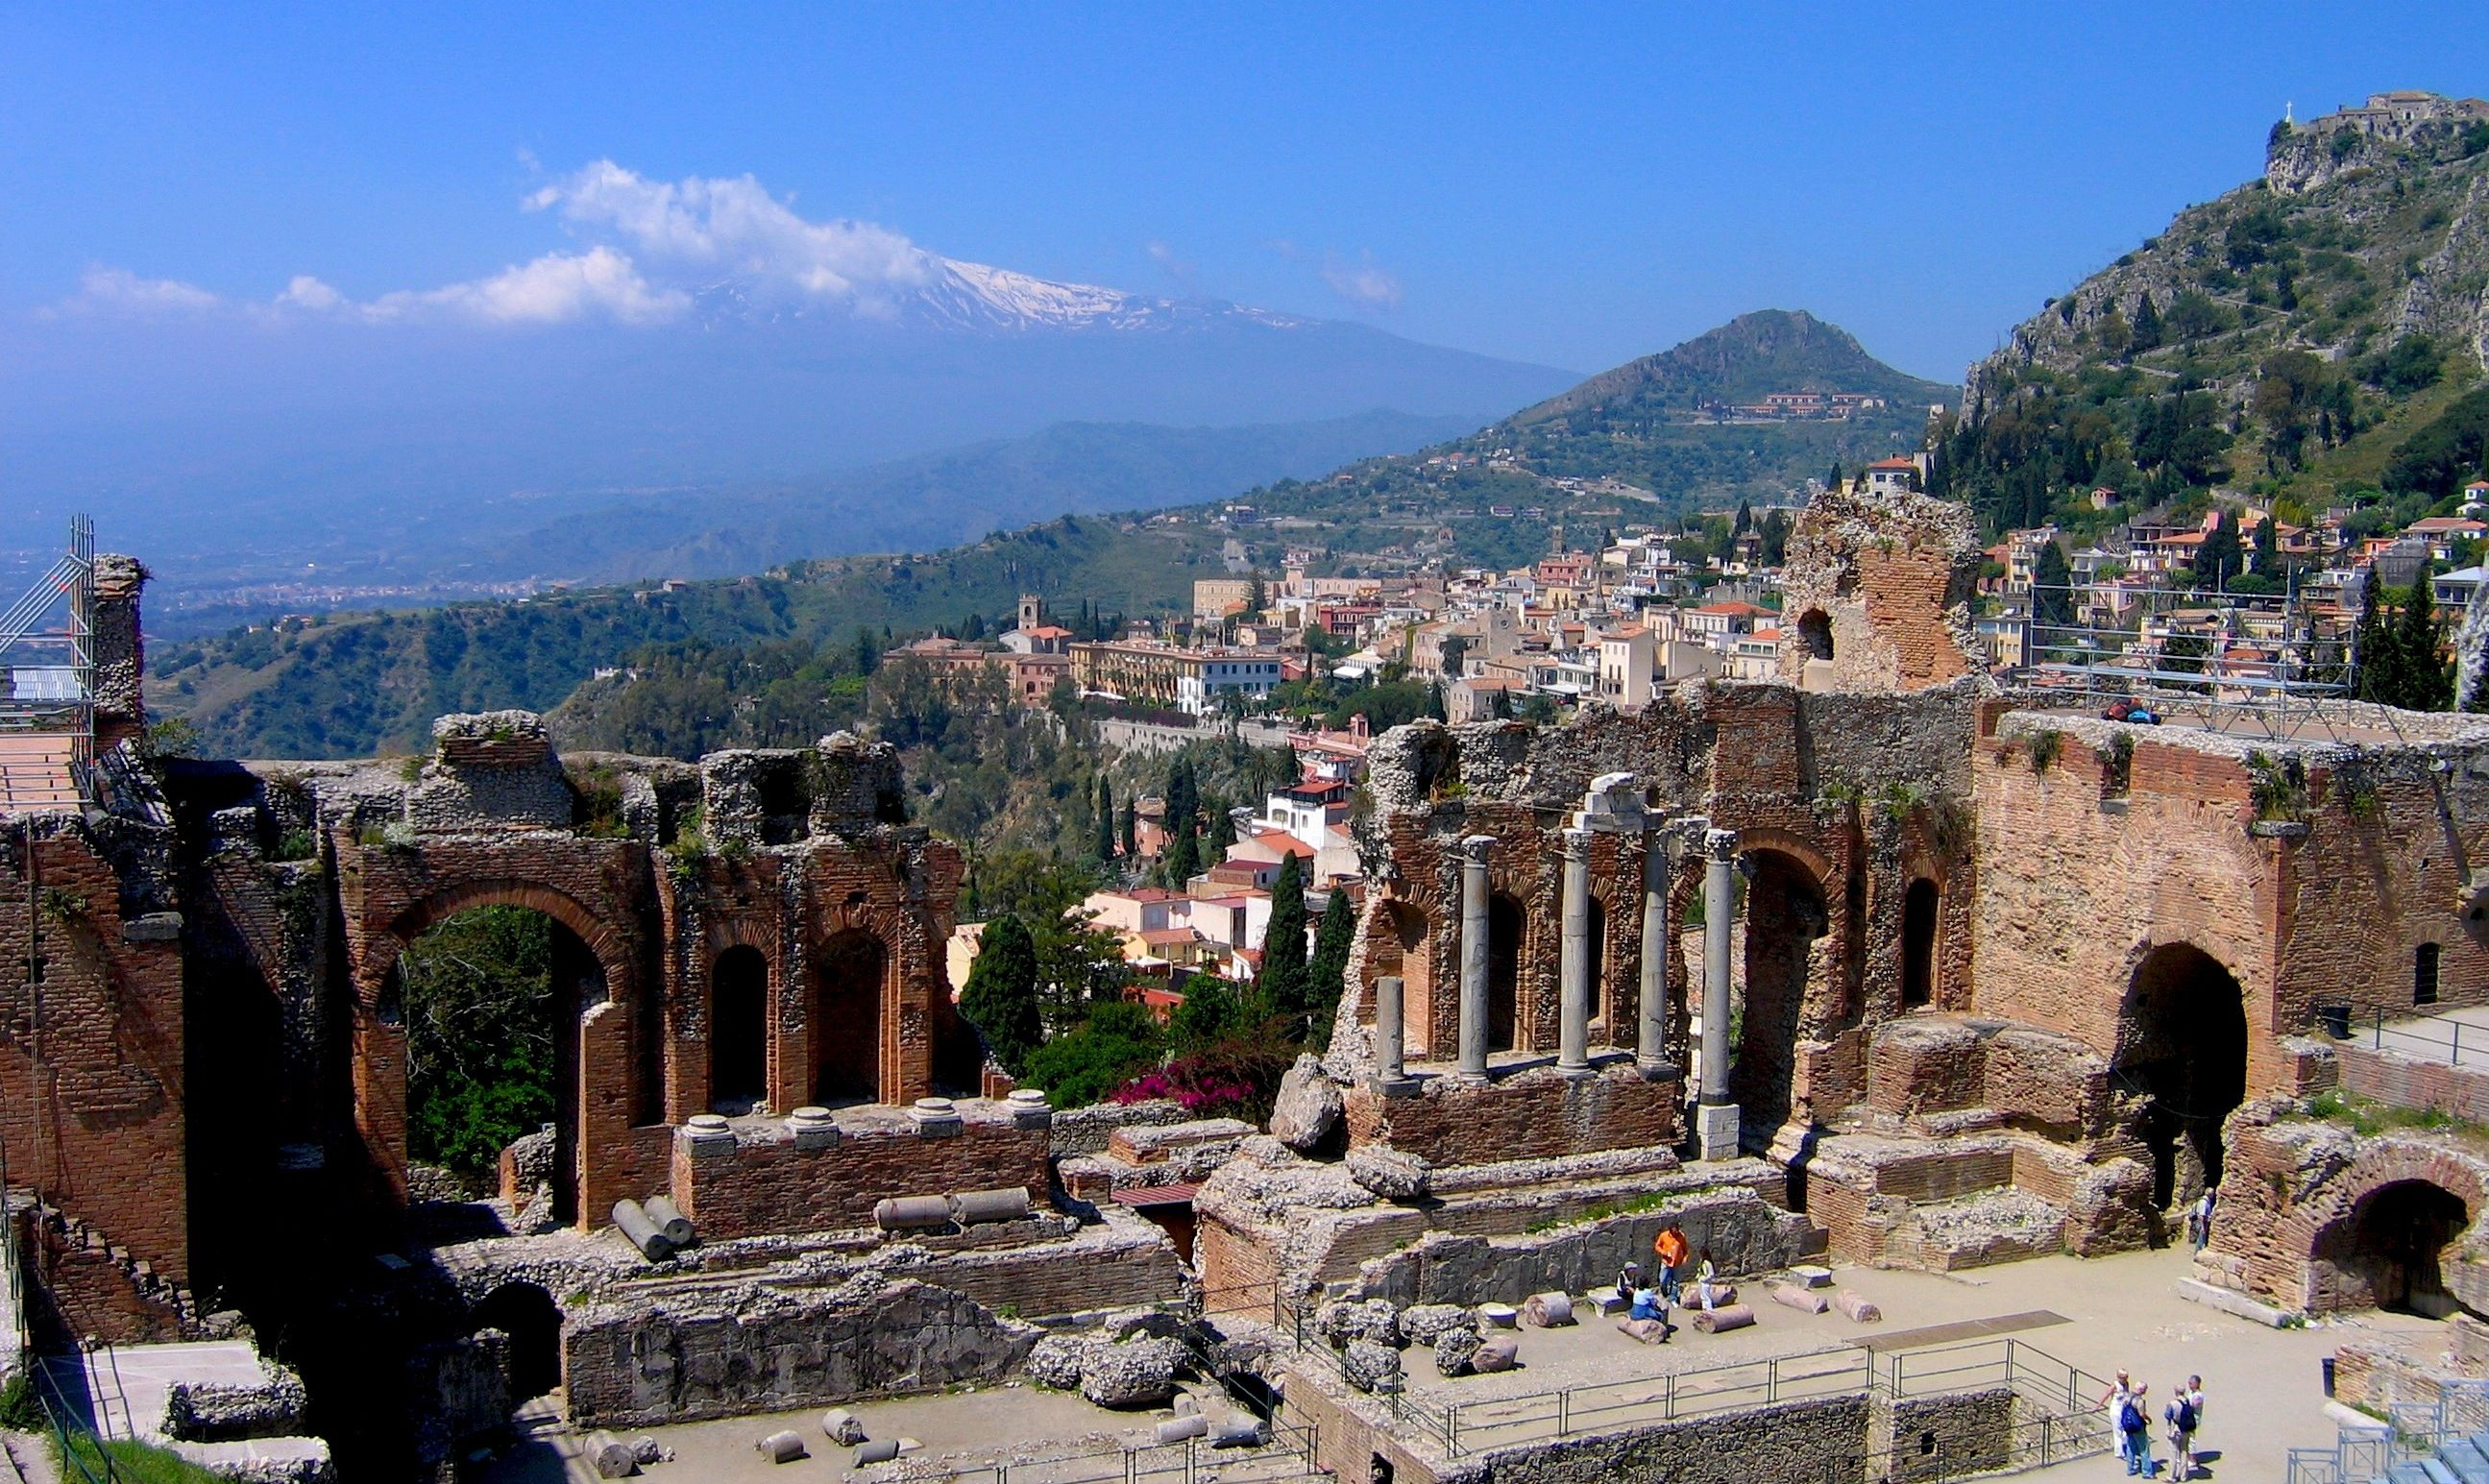 The wonderful Taormina with Mt. Etna / La bellissima